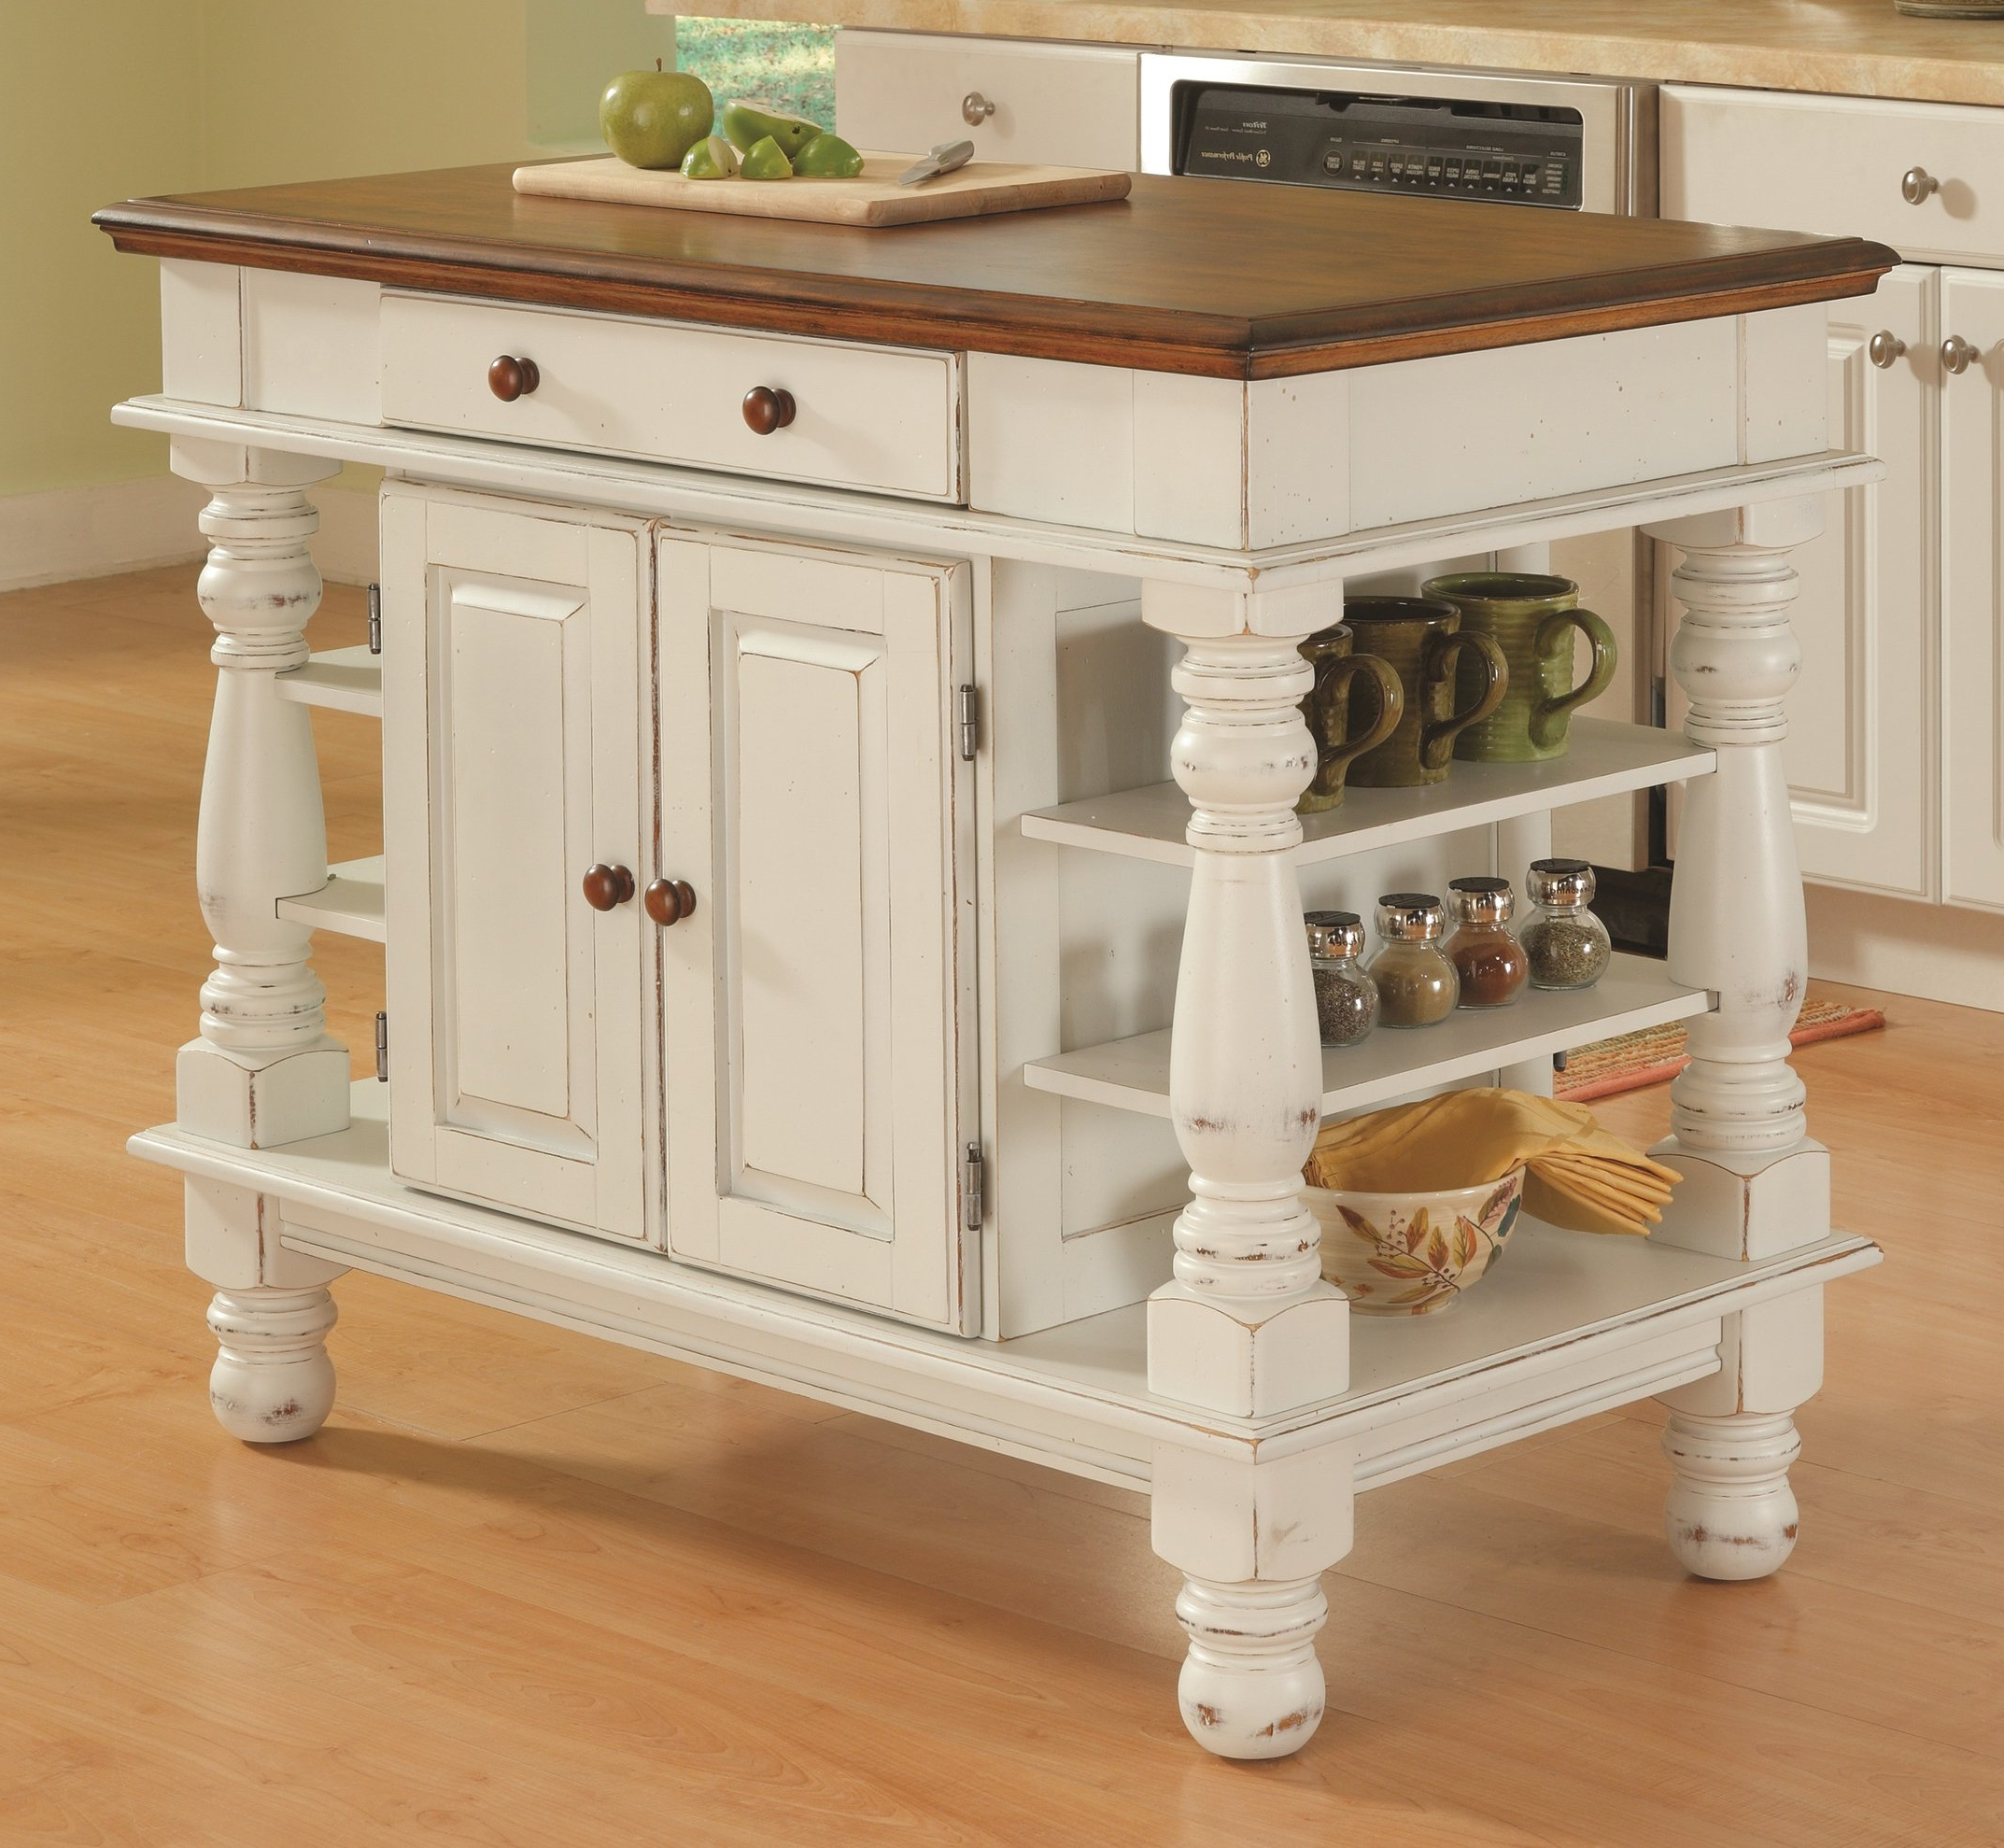 Elworth Kitchen Island Regarding Most Recent Best Rated In Kitchen Islands & Carts & Helpful Customer (View 9 of 25)